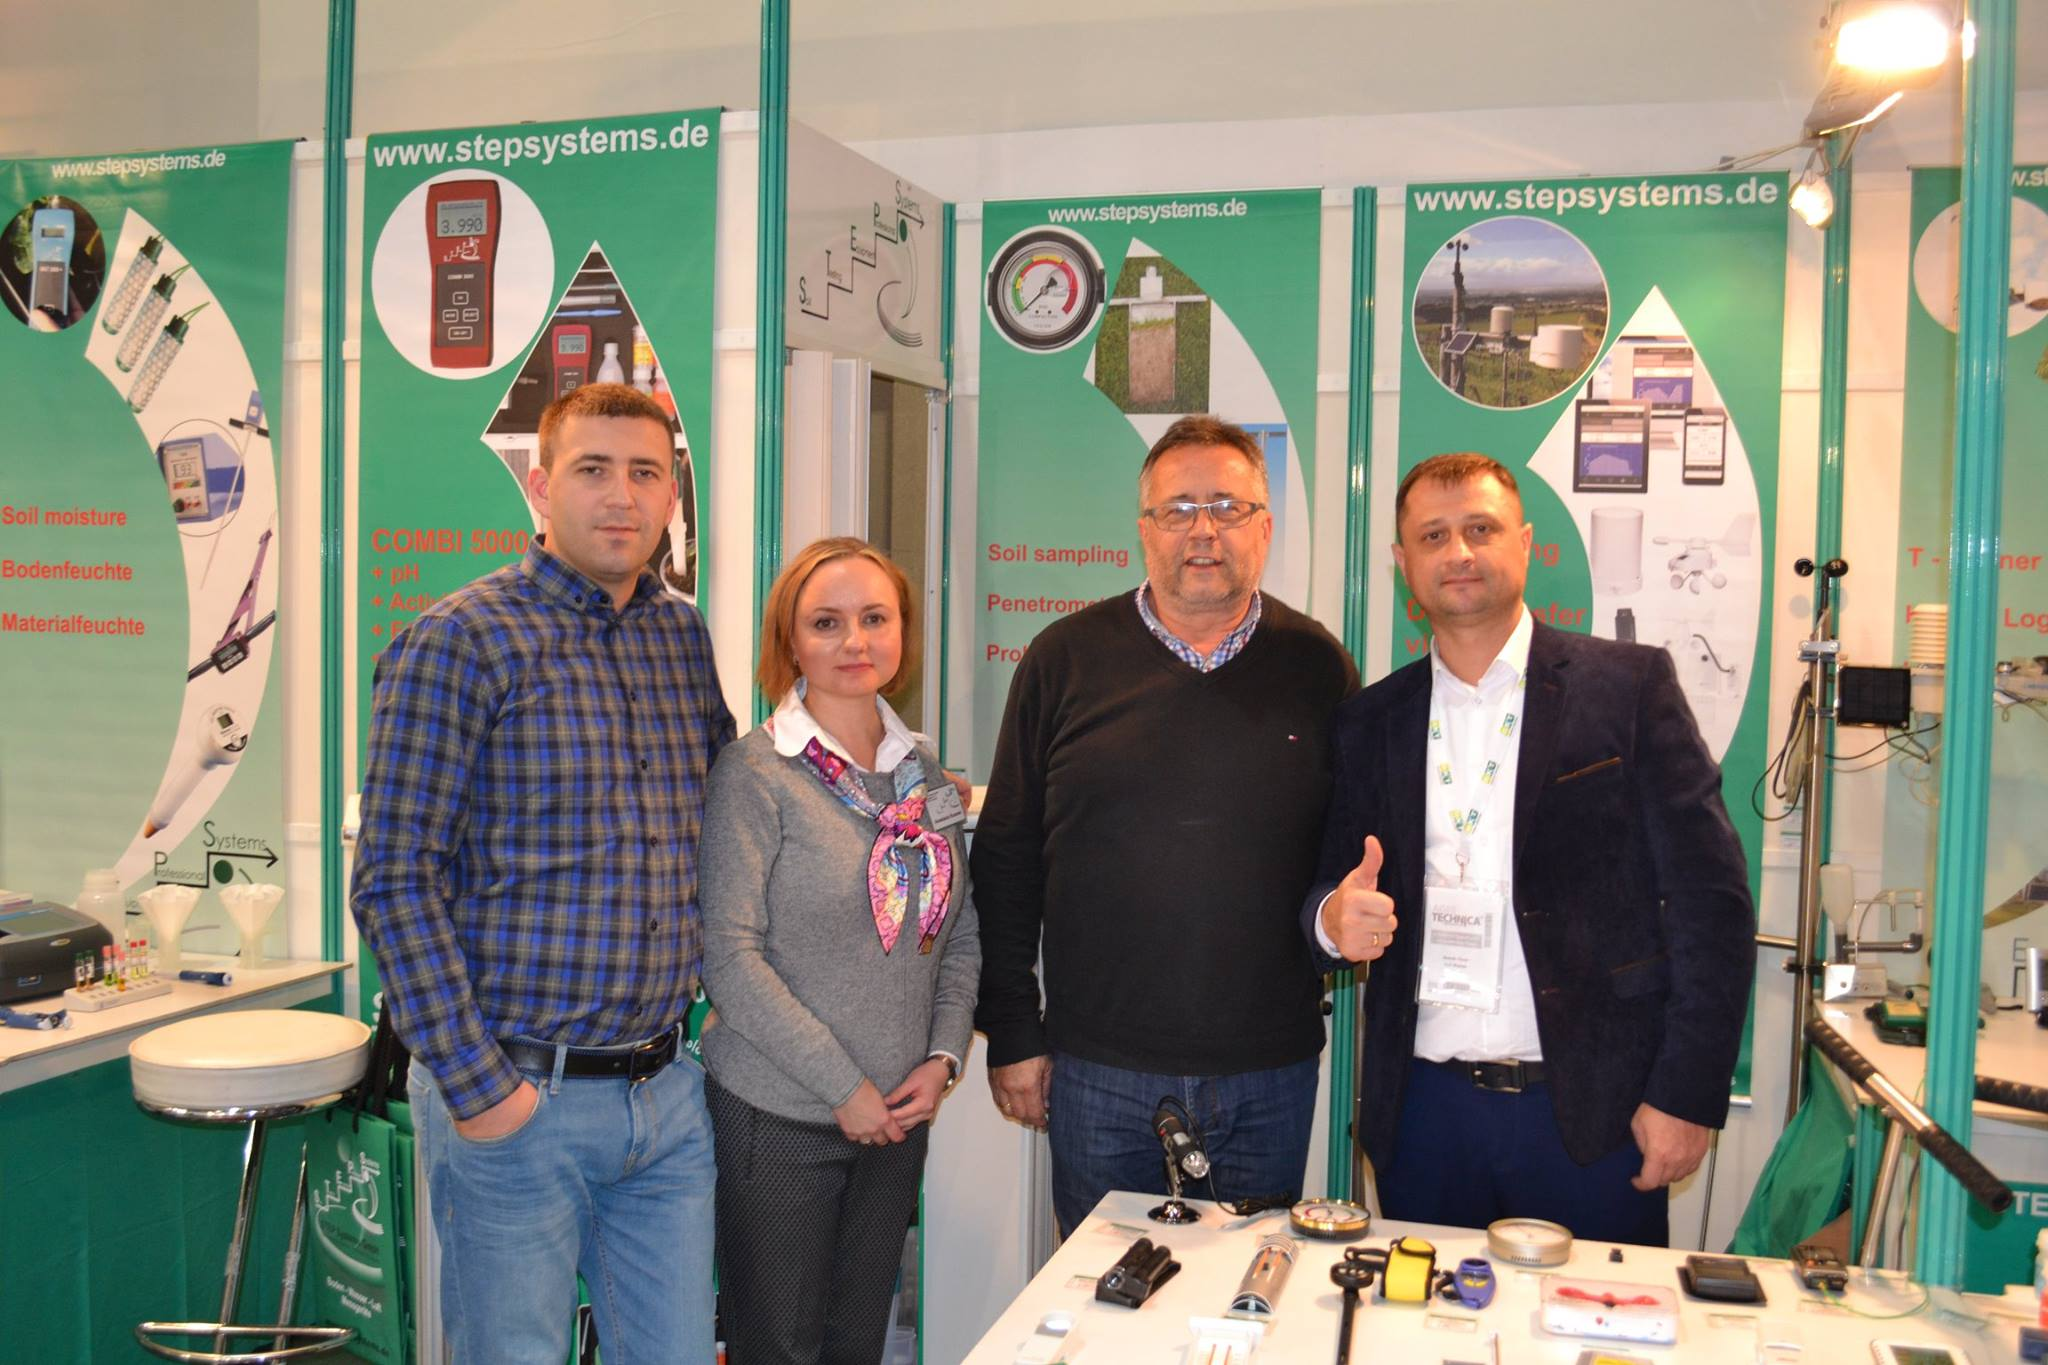 Ms. Konarek and Mr. Braungardt from STEP Systems with our partner in Ukraine, the company SHYBAS